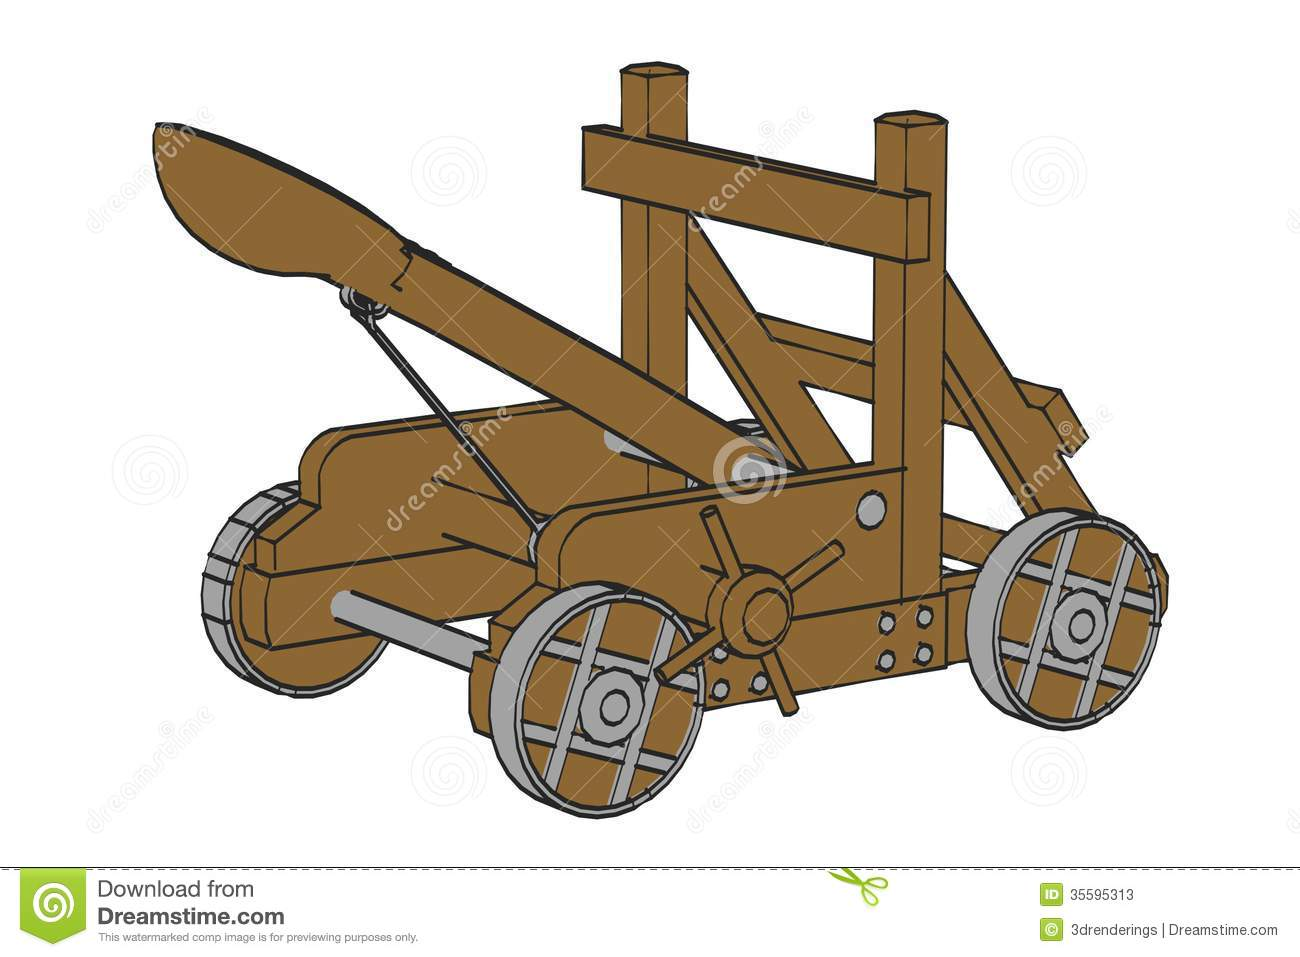 Amazing Catapult Pictures & Backgrounds